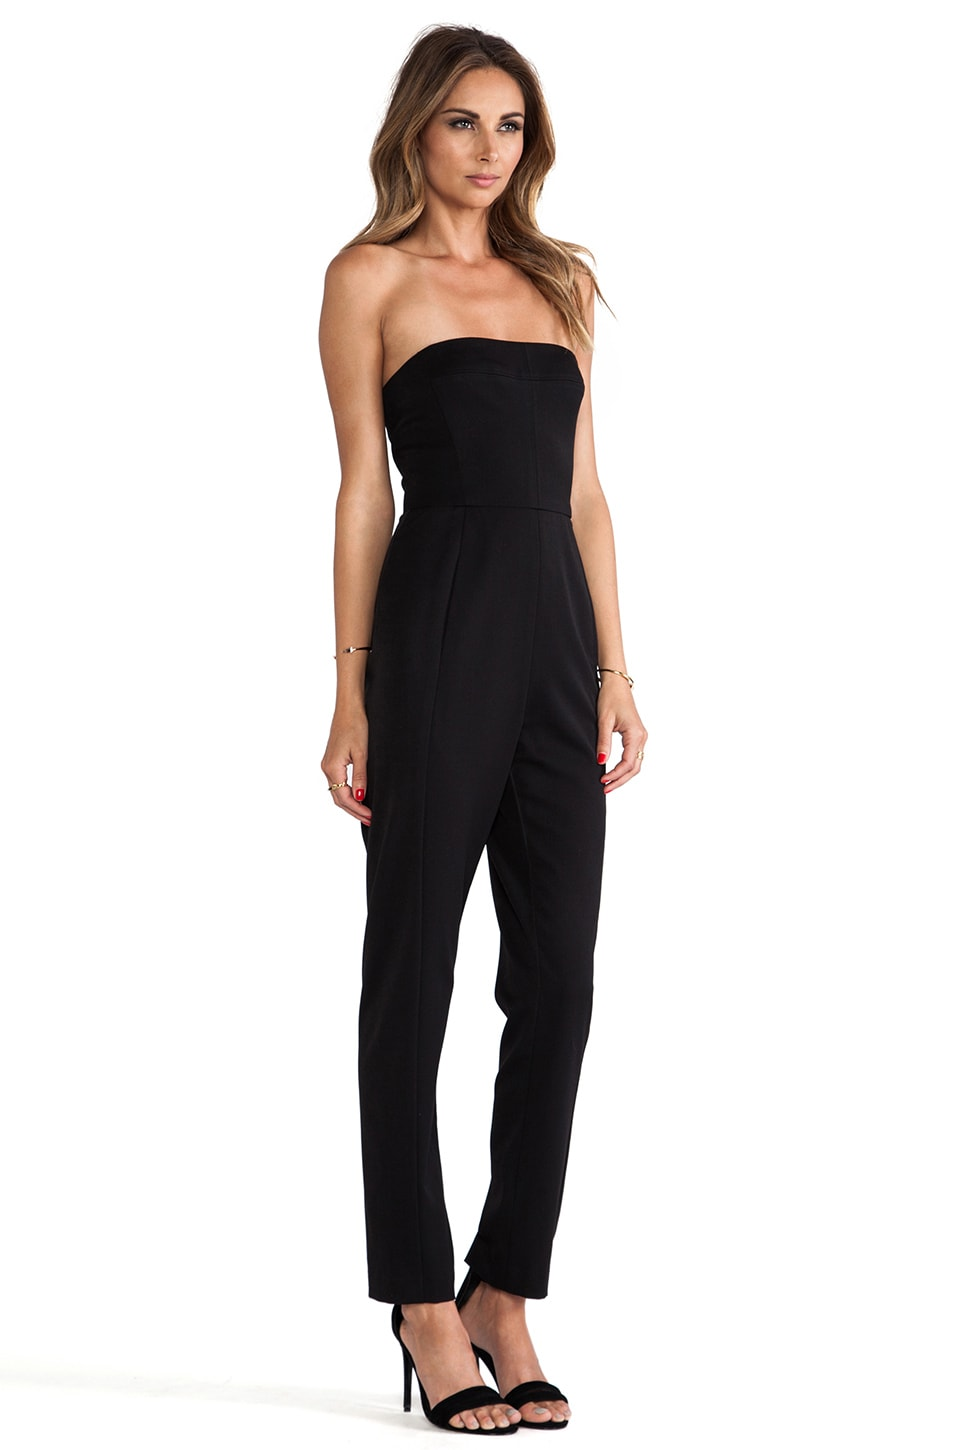 Black Halo Iris Strapless Jumpsuit in Black | REVOLVE